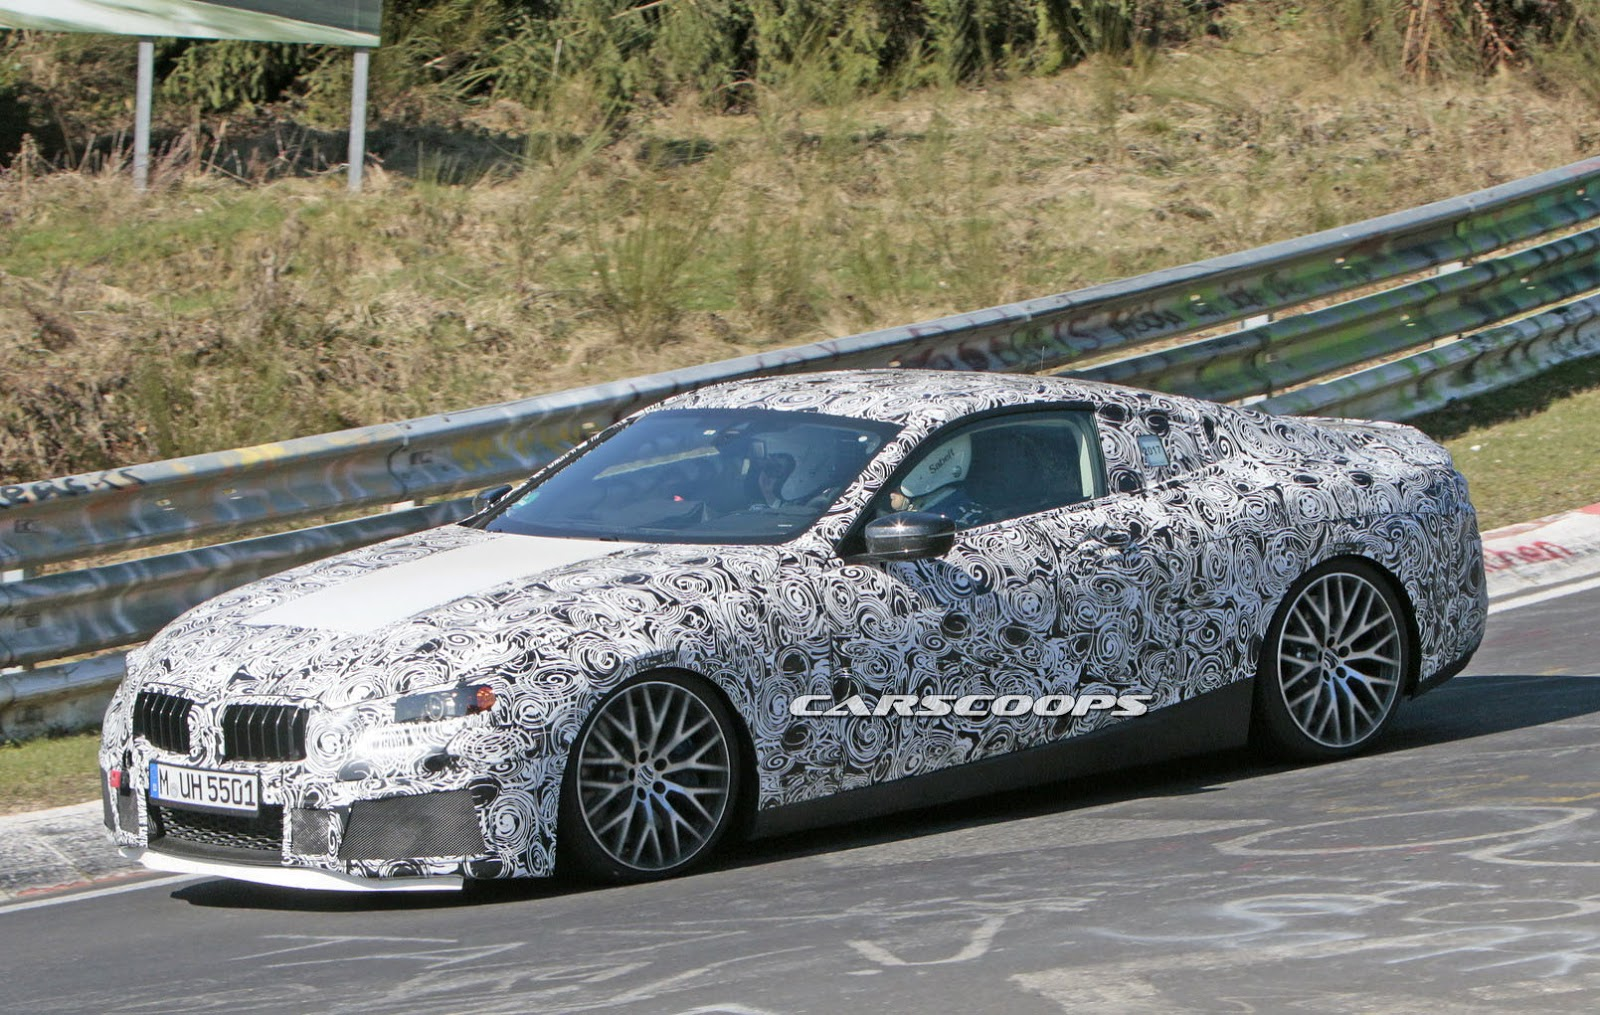 Bmw Confirms 8 Series I8 Roadster For 2018 Launch Carscoops